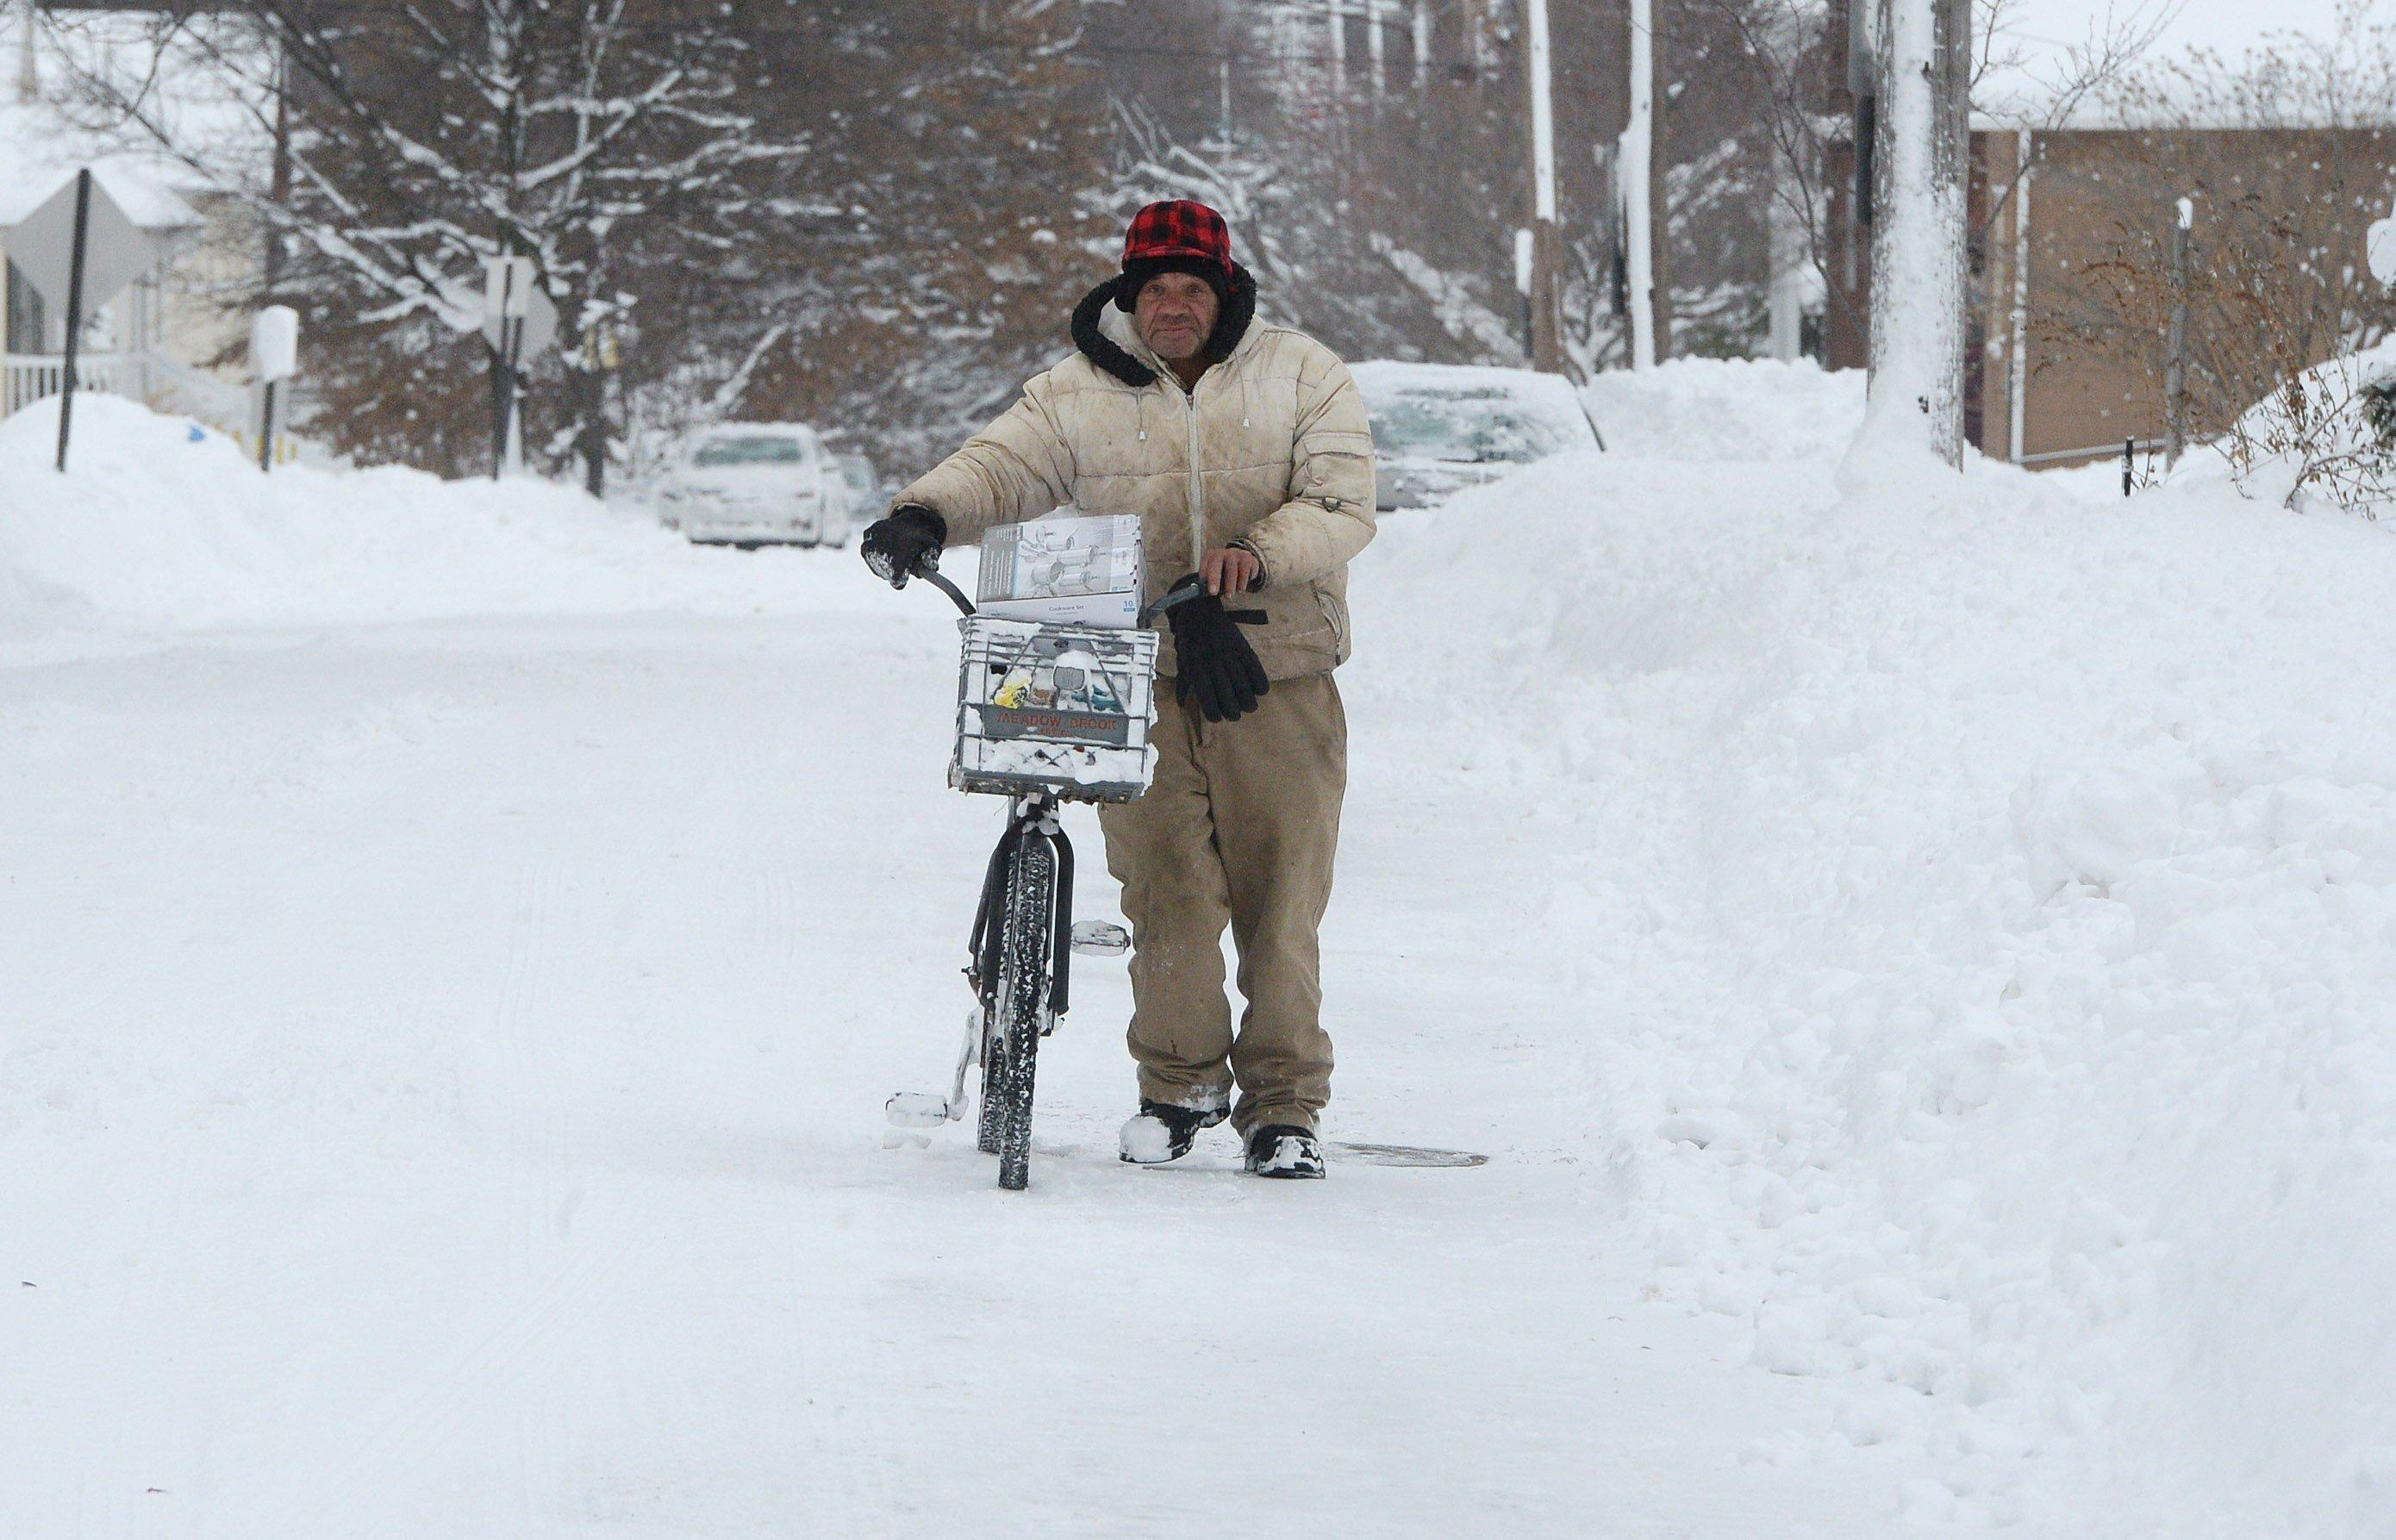 Logan Rogers pushes his bike along East Third Street in Erie, Pa., Wednesday, Dec. 27, 2017. Freezing temperatures and below-zero wind chills socked much of the northern United States on Wednesday, and the snow-hardened city of Erie, dug out from a record snowfall.  (Jack Hanrahan/Erie Times-News via AP)